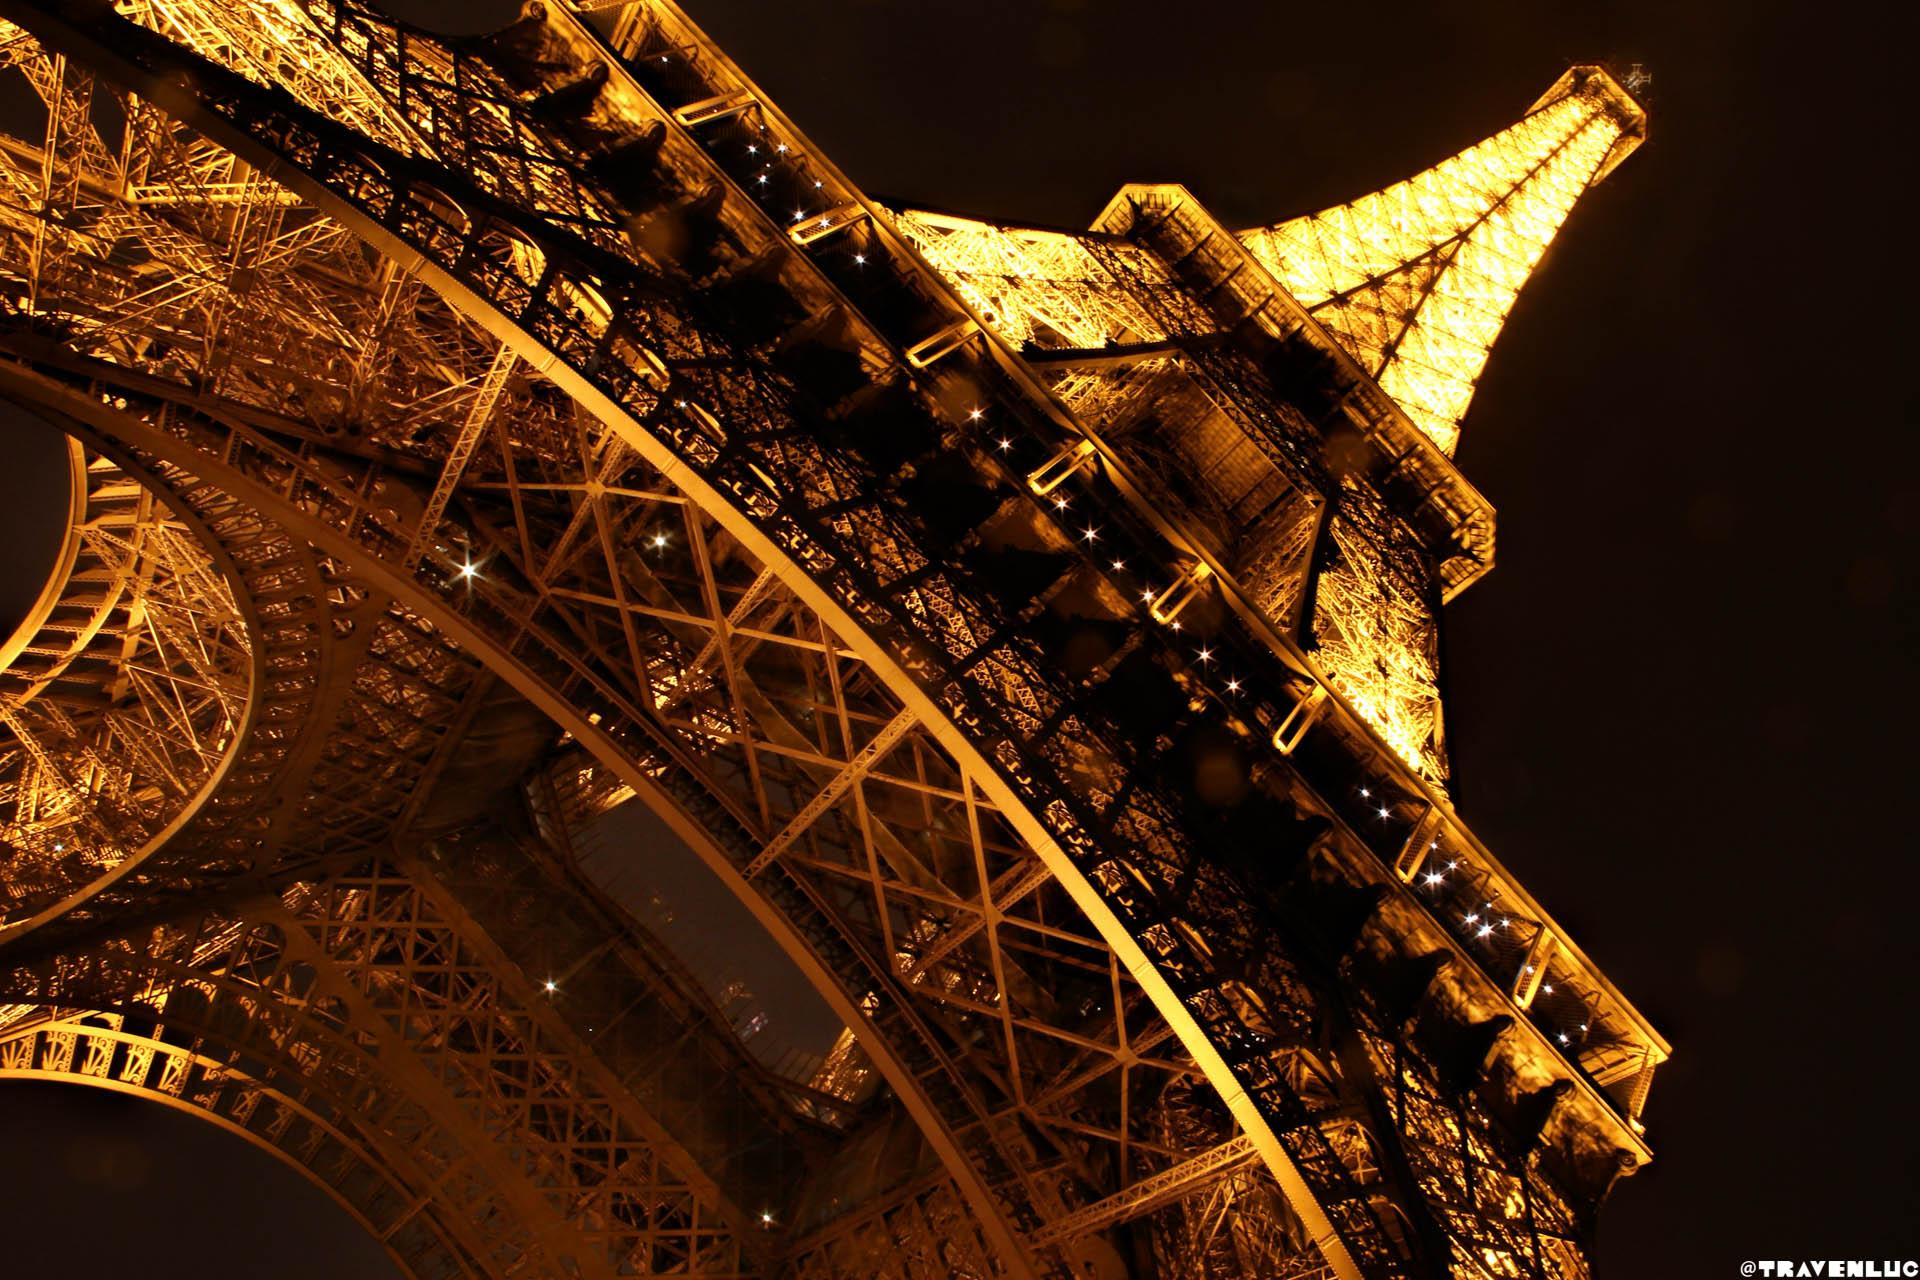 Eiffel Tower - Traven Luc